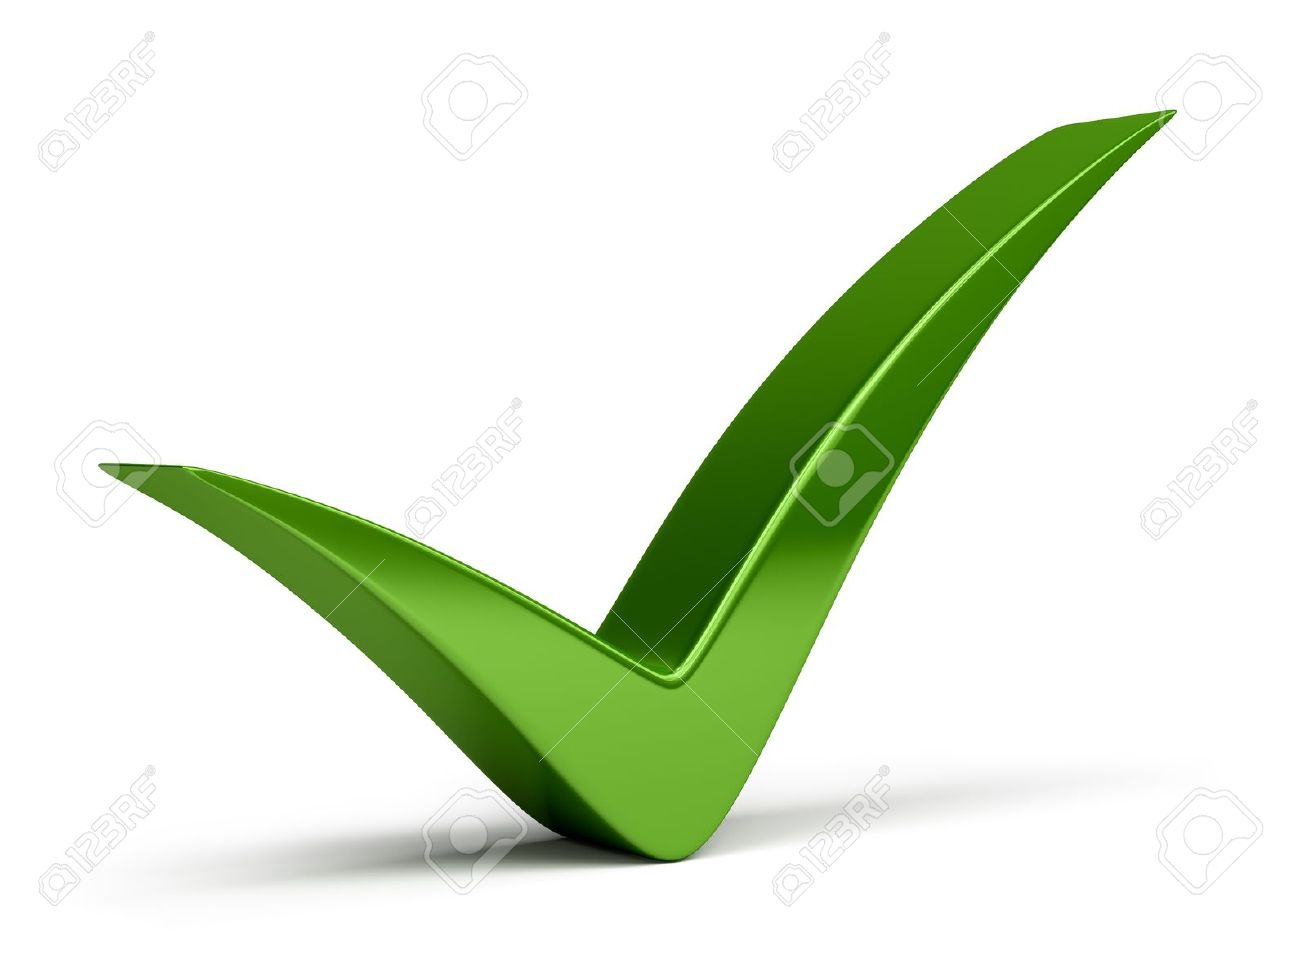 12008187-Green-check-mark-3d-image-Isolated-white-background--Stock-Photo.jpg (50 KB)